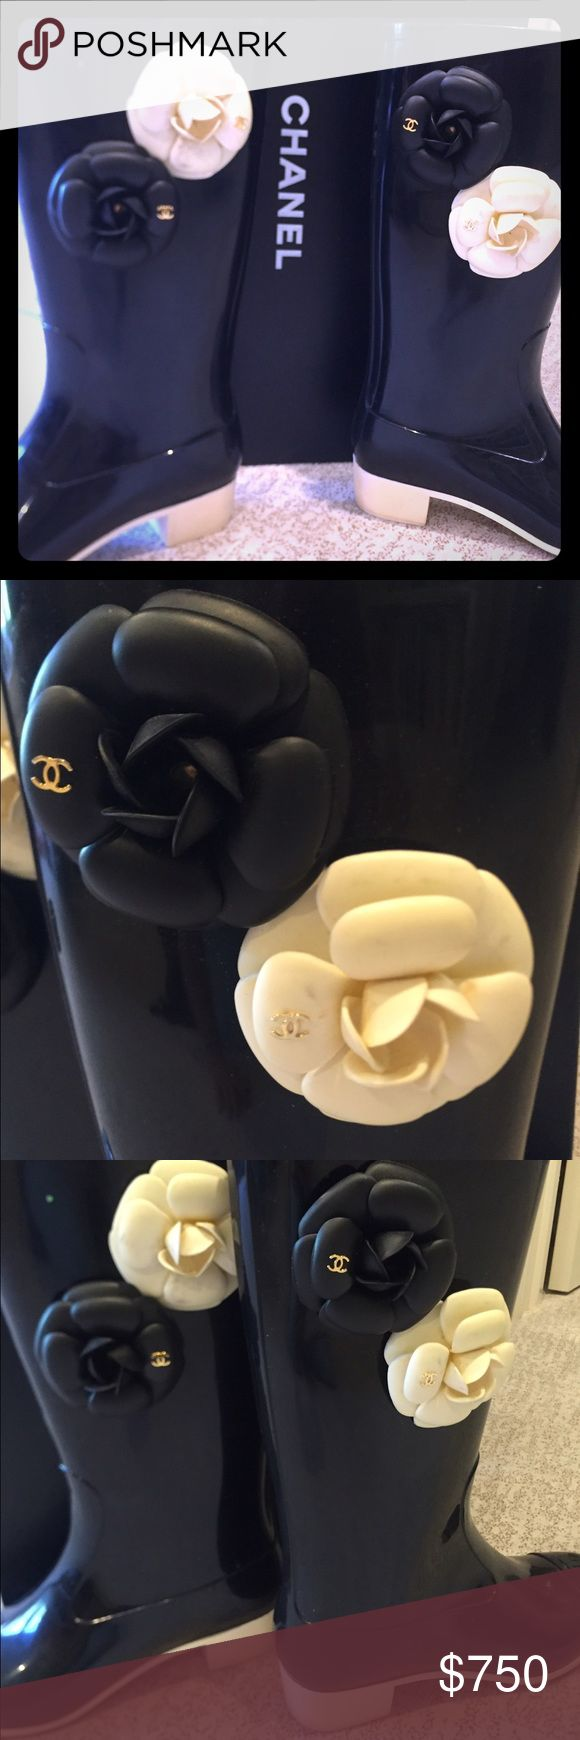 Chanel rain boots Chanel black and white rain boots.. Gently worn. Original box also included. CHANEL Shoes Winter & Rain Boots